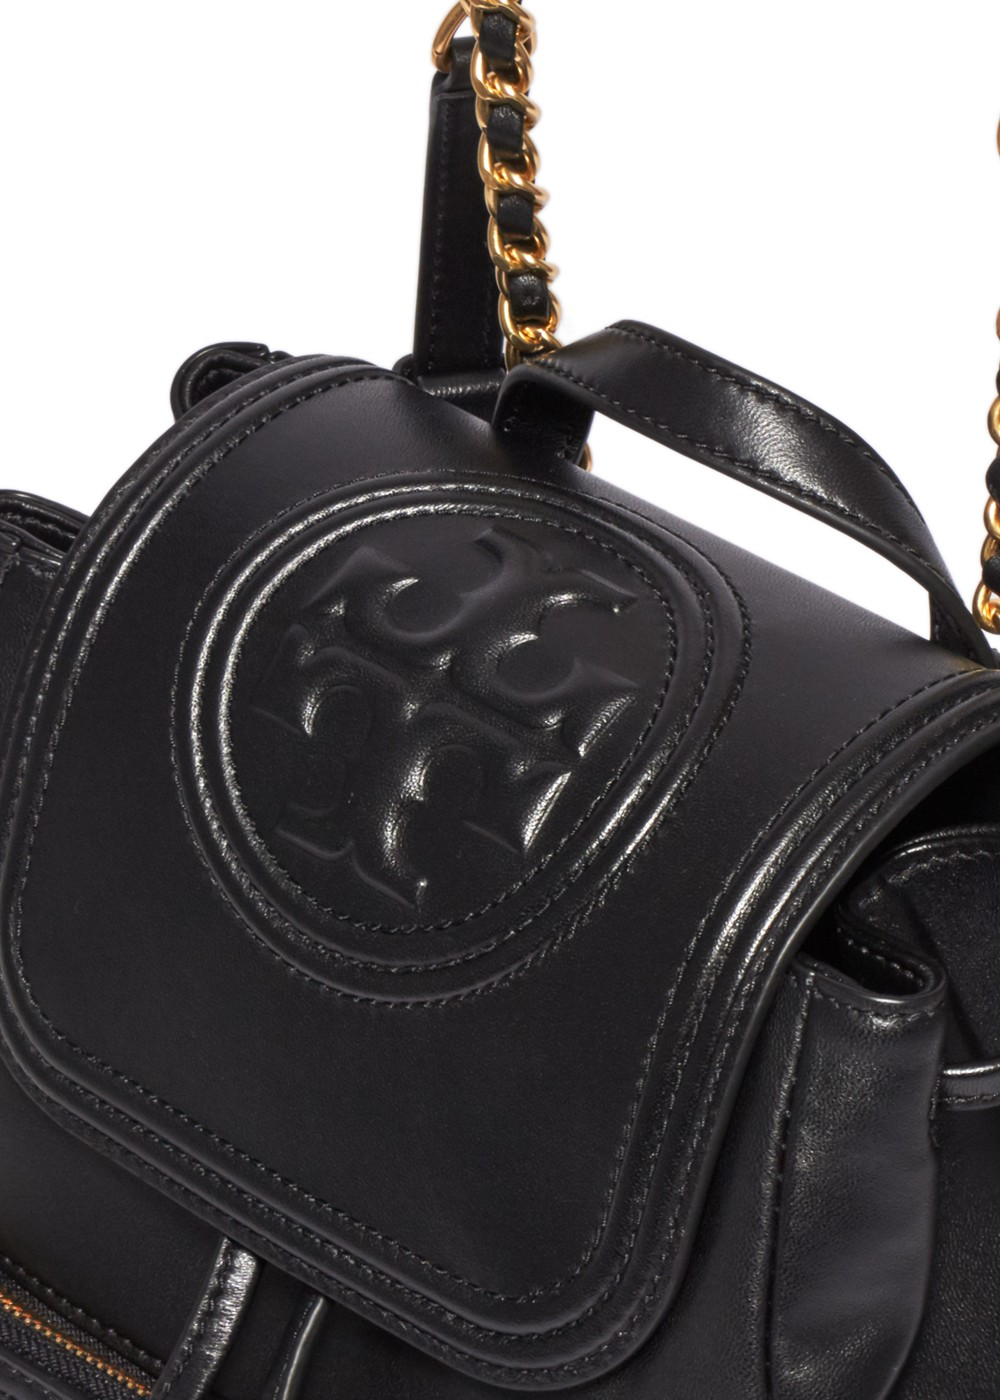 TORY BURCH|トリバーチ|FLEMING|フレミング|QUILTED LEATHER BACKPACK